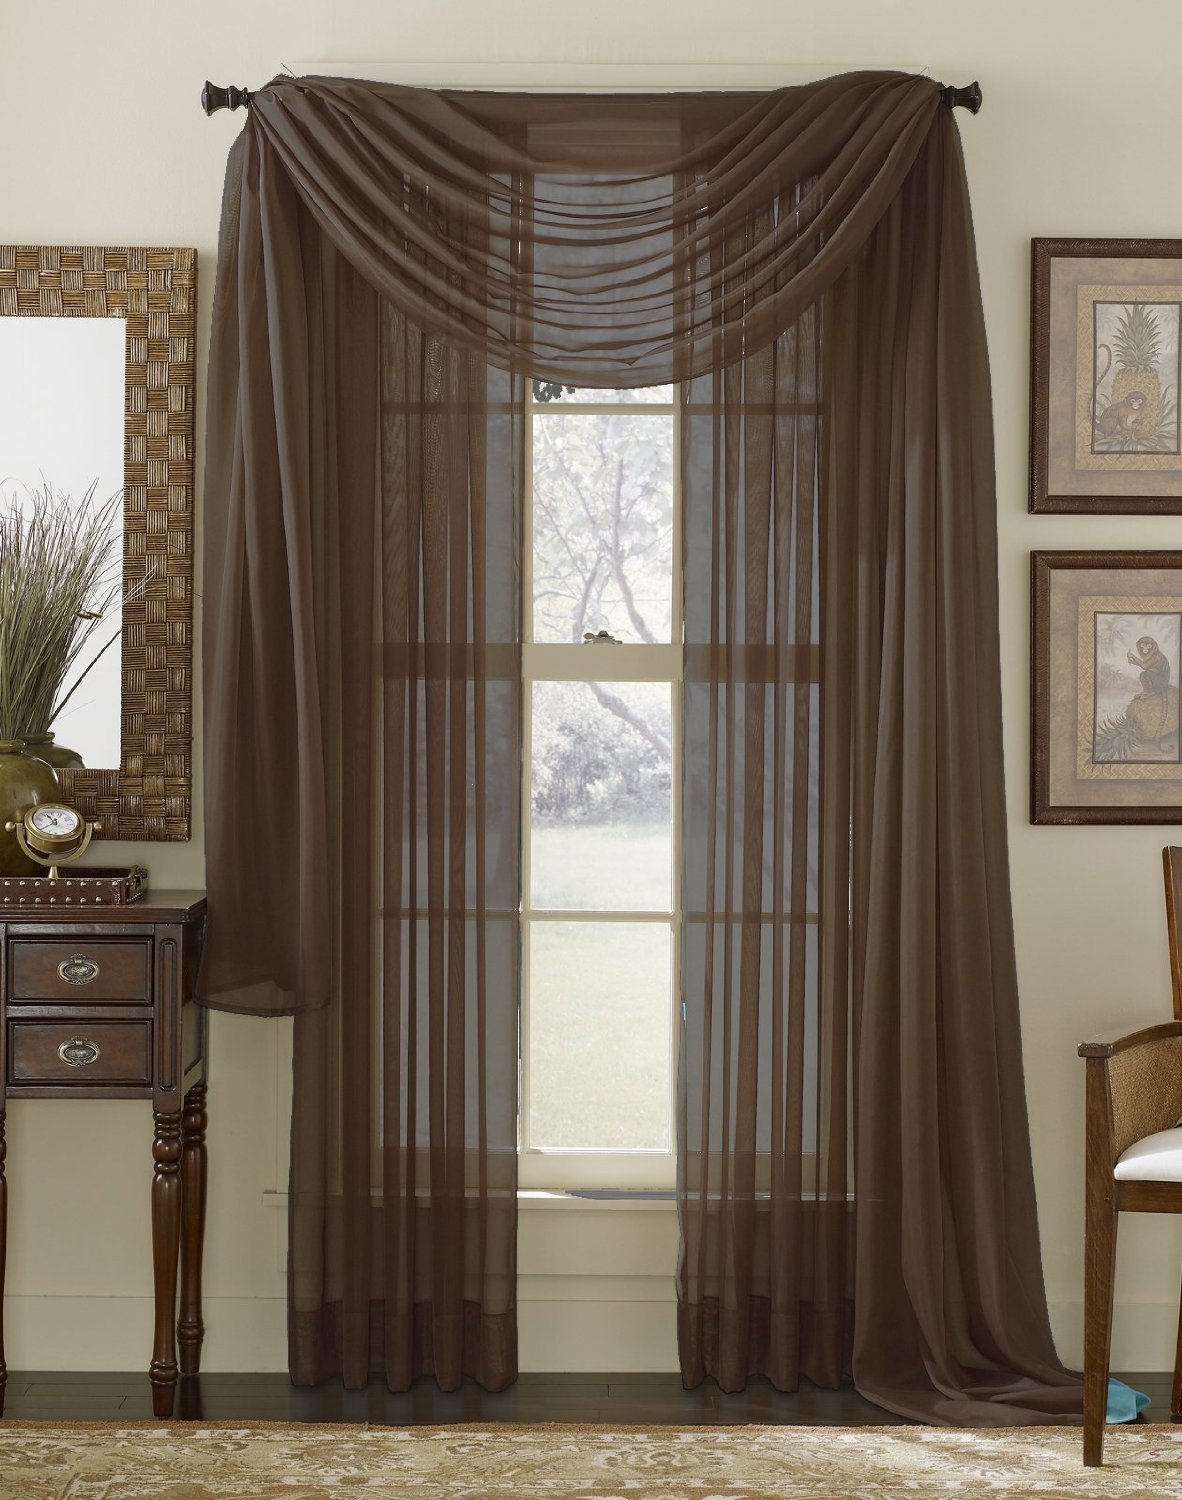 HLC.ME Voile Sheer Curtain Coffee Chocolate Brown 216 In. Scarf at Sears.com